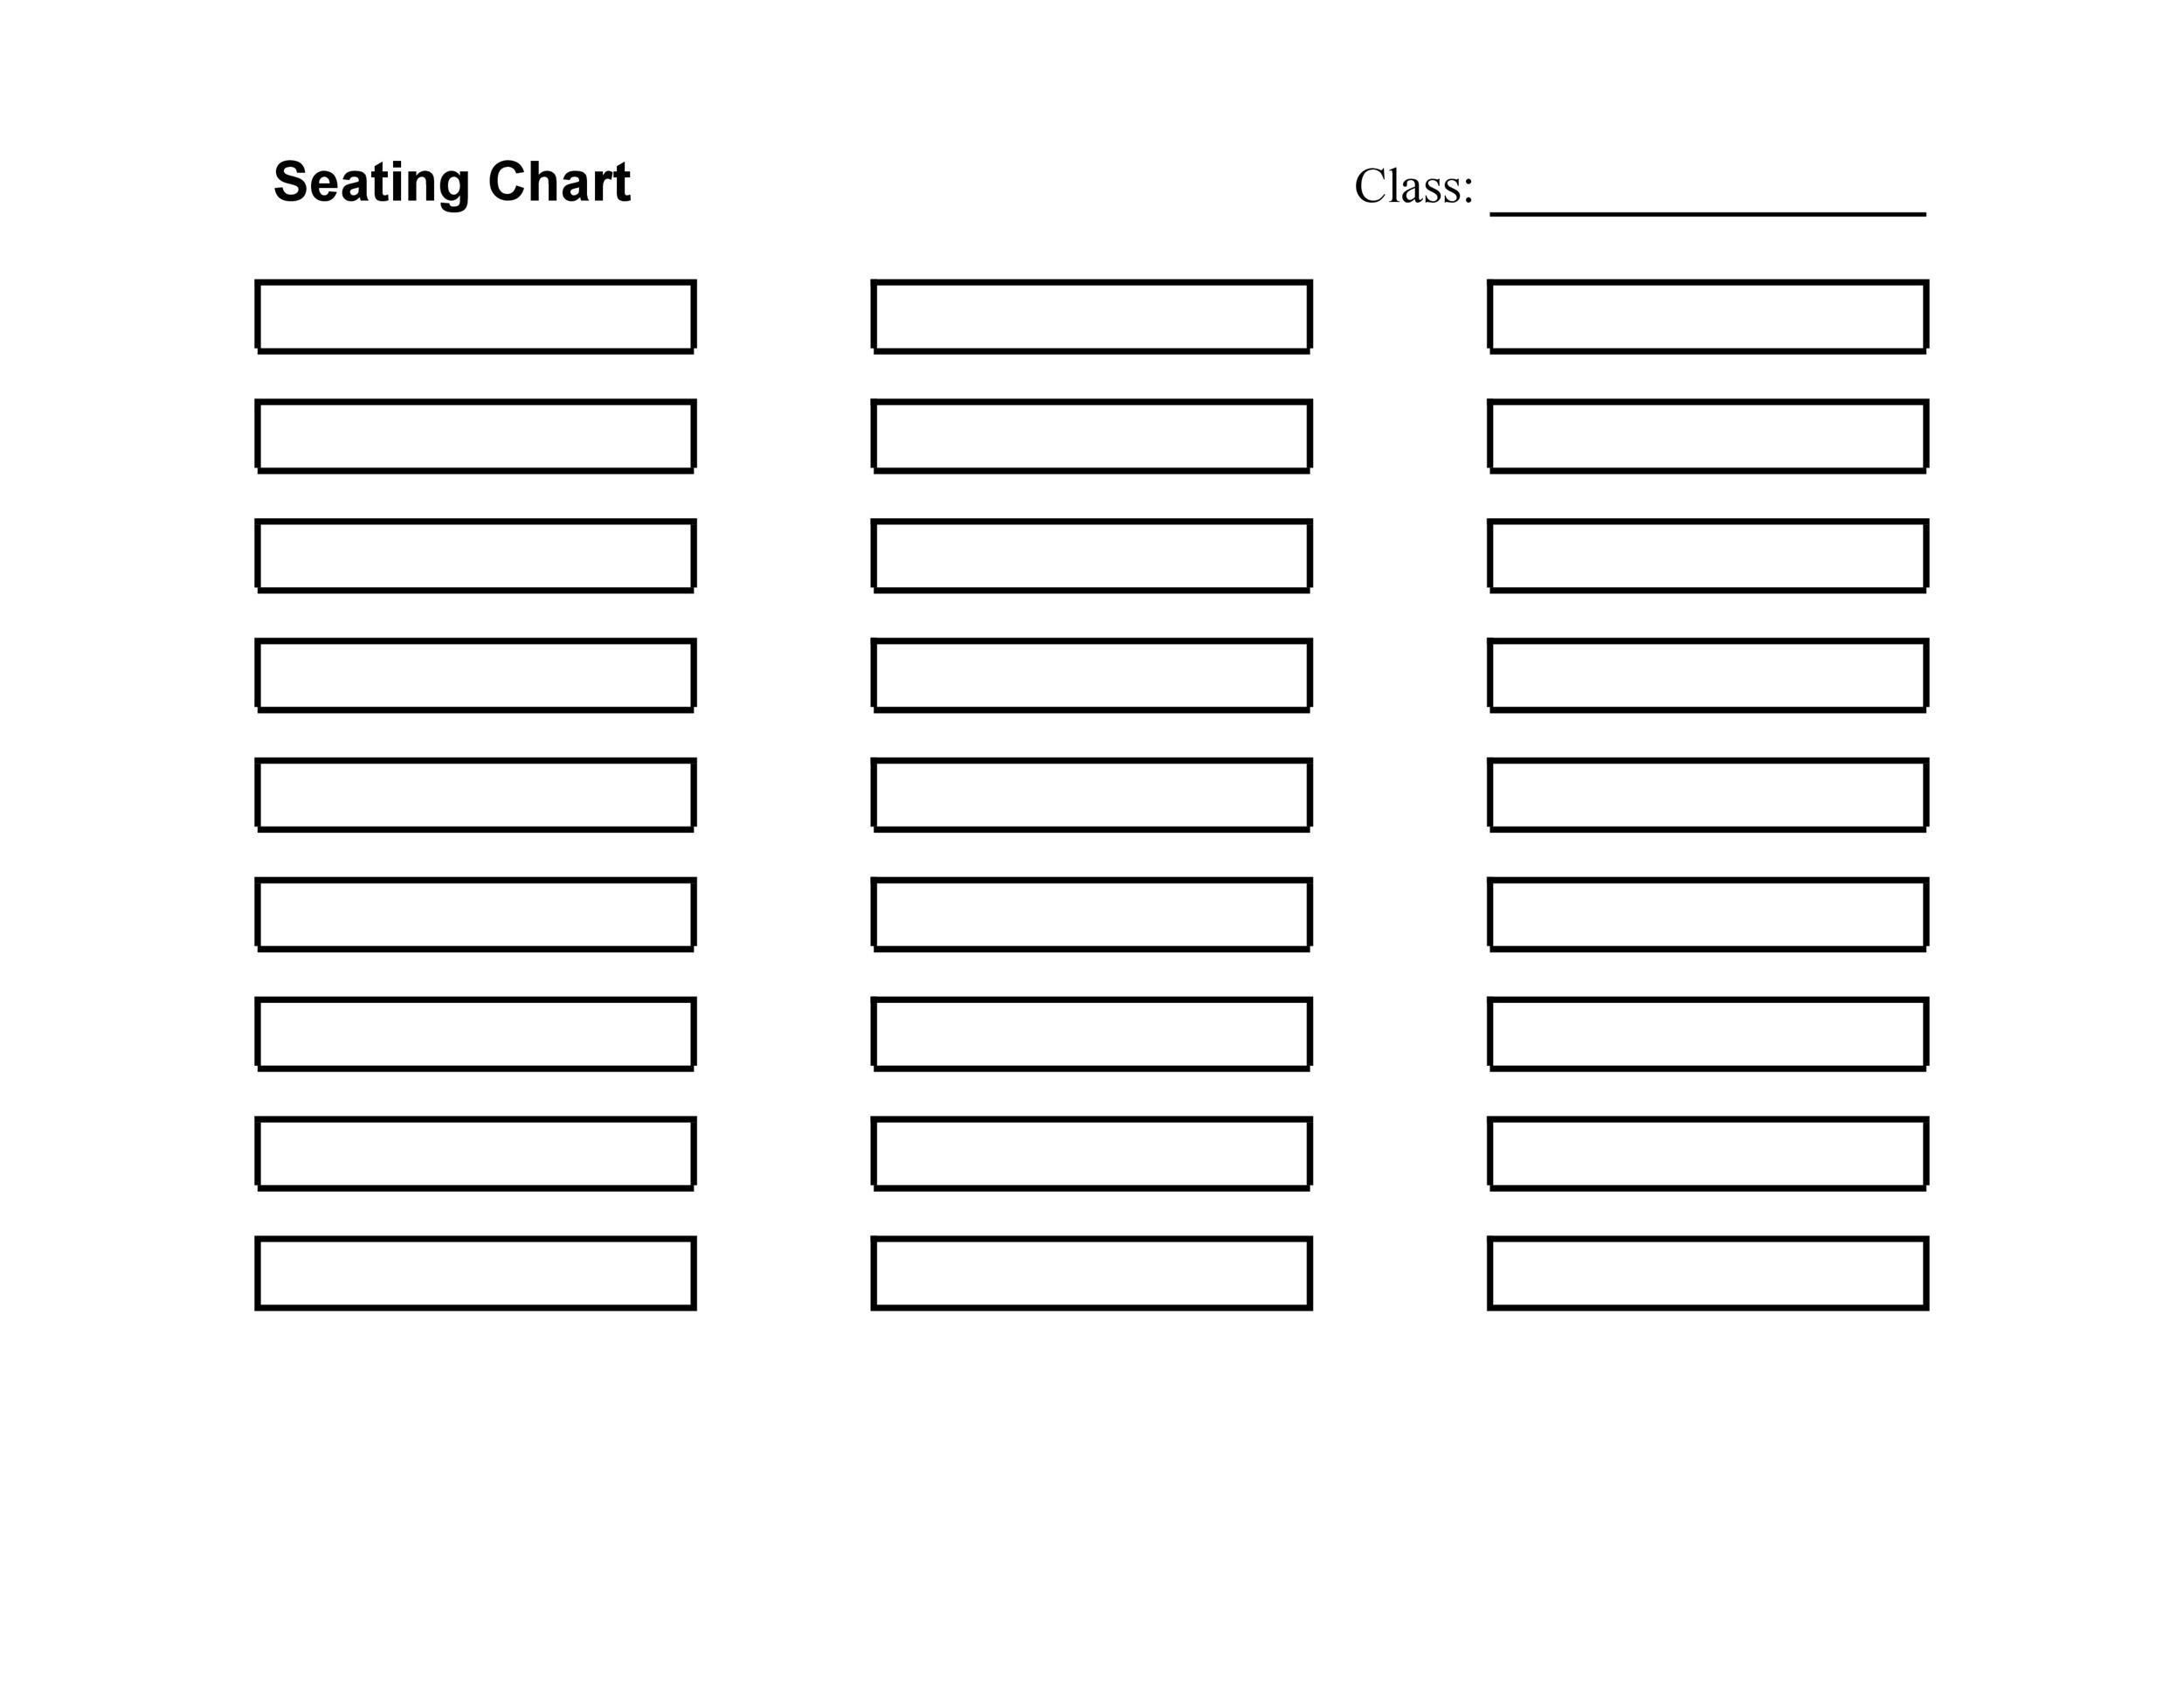 40 great seating chart templates wedding classroom more free seating chart template 33 maxwellsz